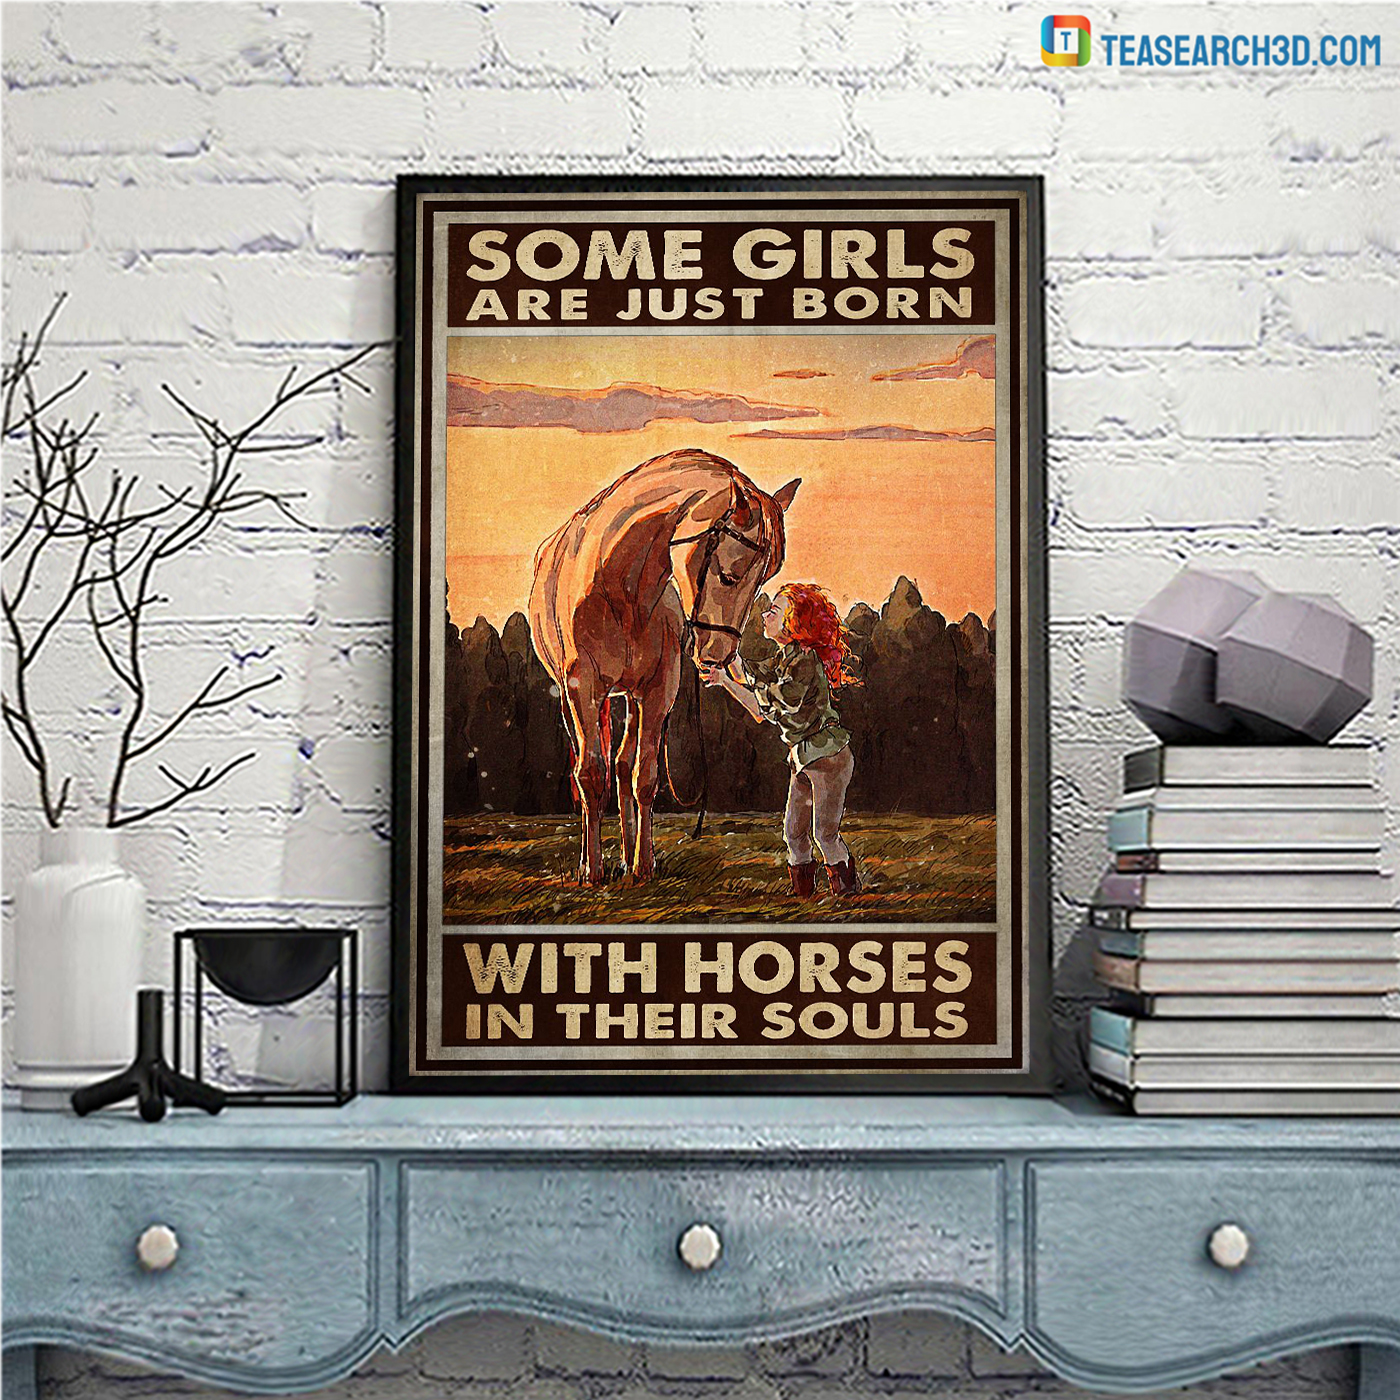 Some girls are just born with horses in their souls poster